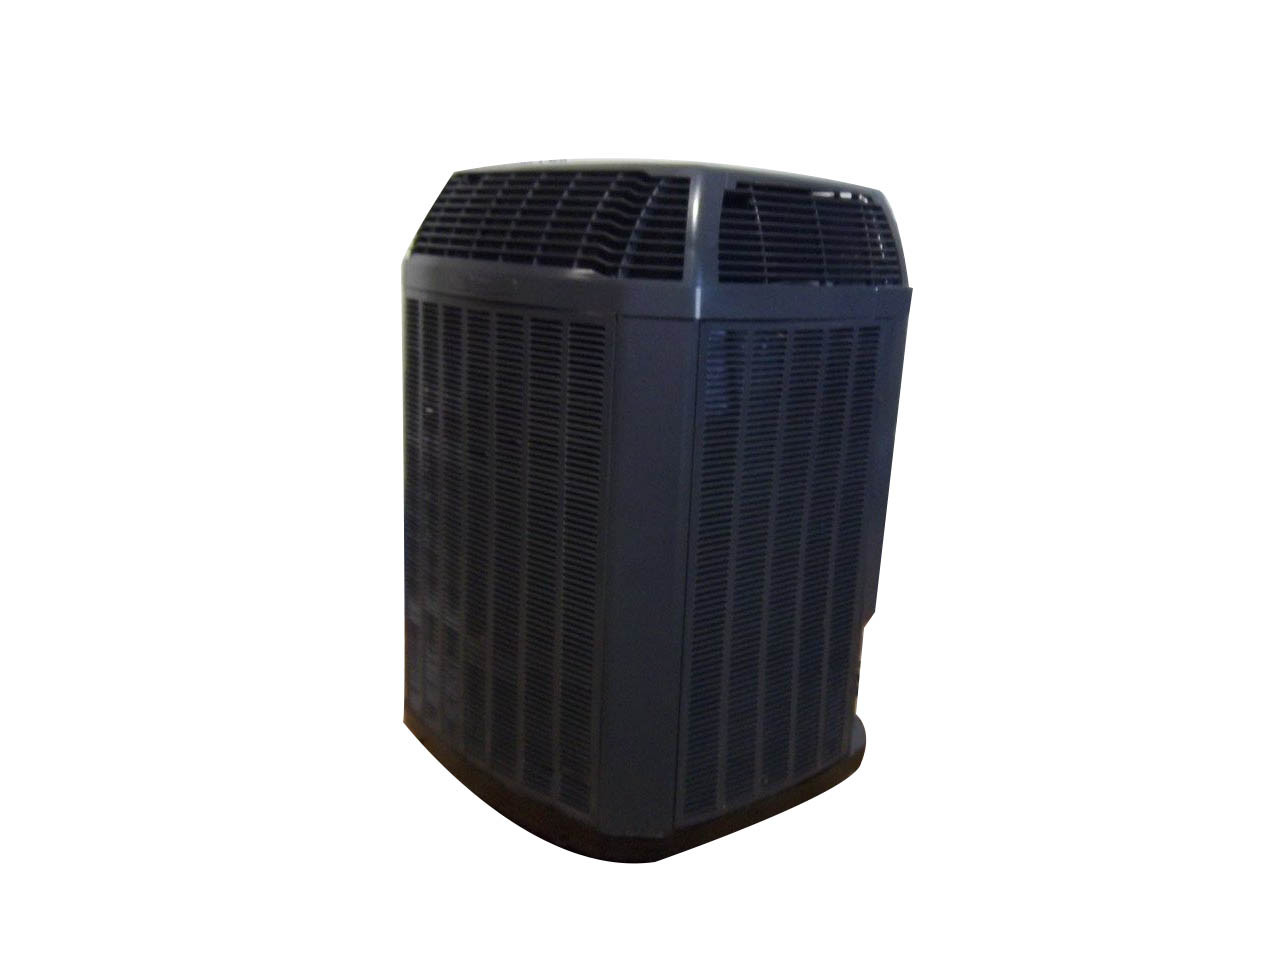 #42495B Used AC Depot Refurbished Certified Condenser TRANE  Most Effective 6585 Split Ac Unit Home Depot pictures with 1280x960 px on helpvideos.info - Air Conditioners, Air Coolers and more